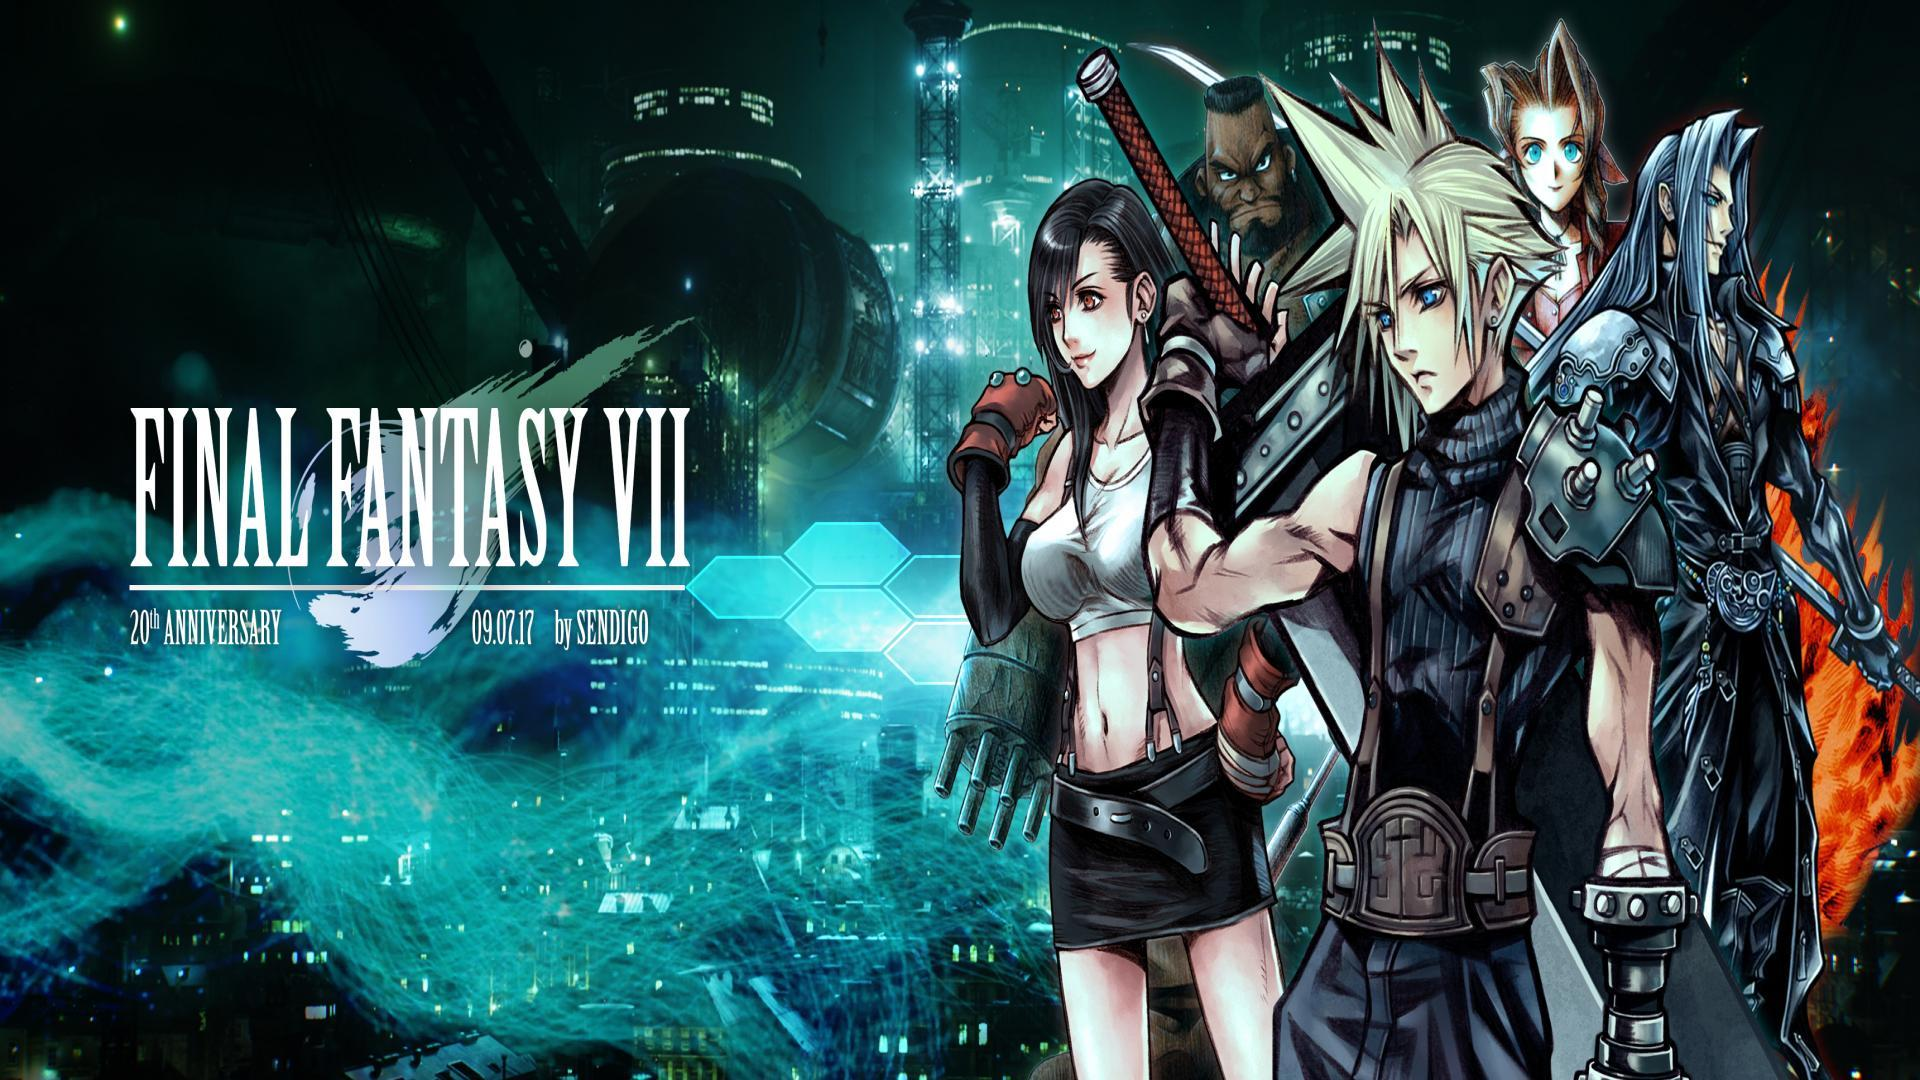 Final Fantasy Vii Wallpaper Posted By Samantha Johnson